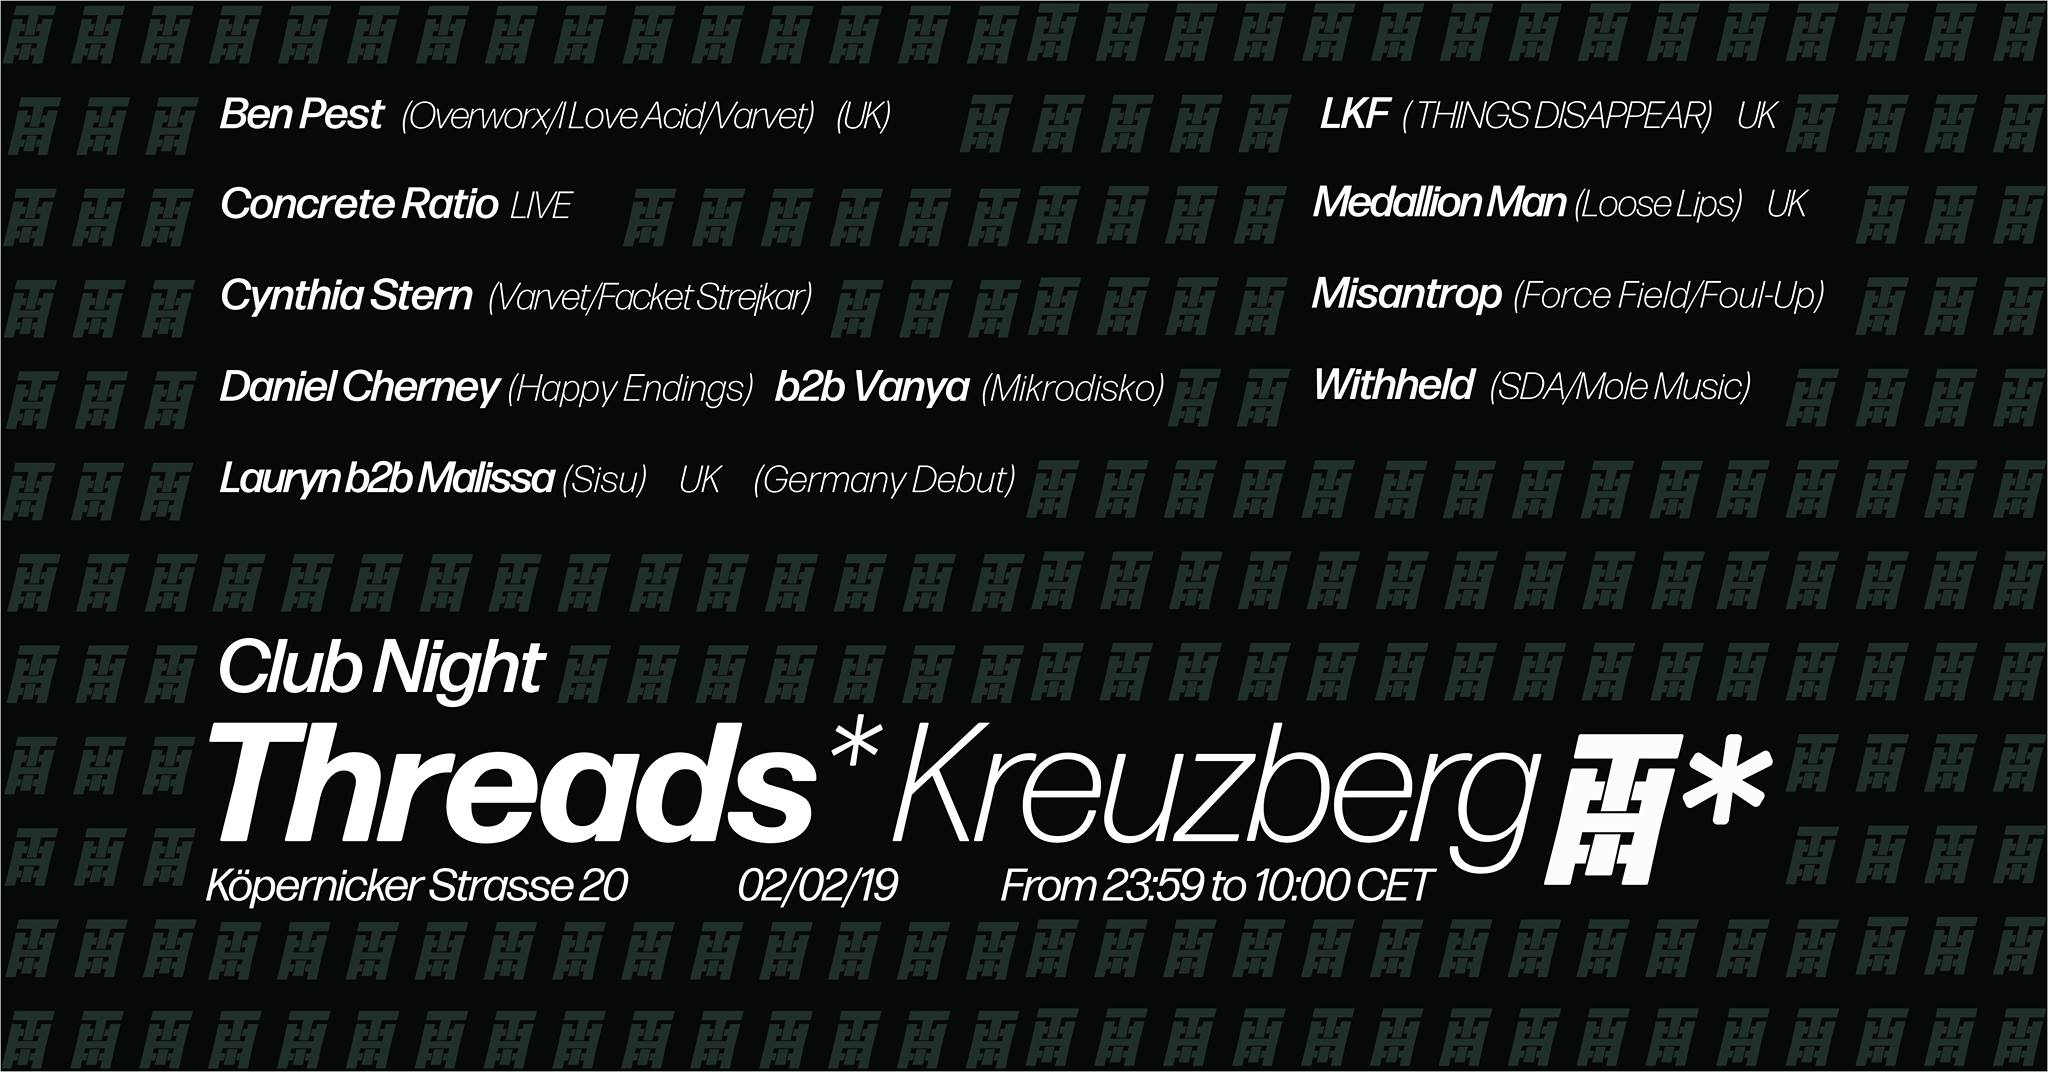 Threads*Kreuzberg Pop Up – Club Night (02/02/19)